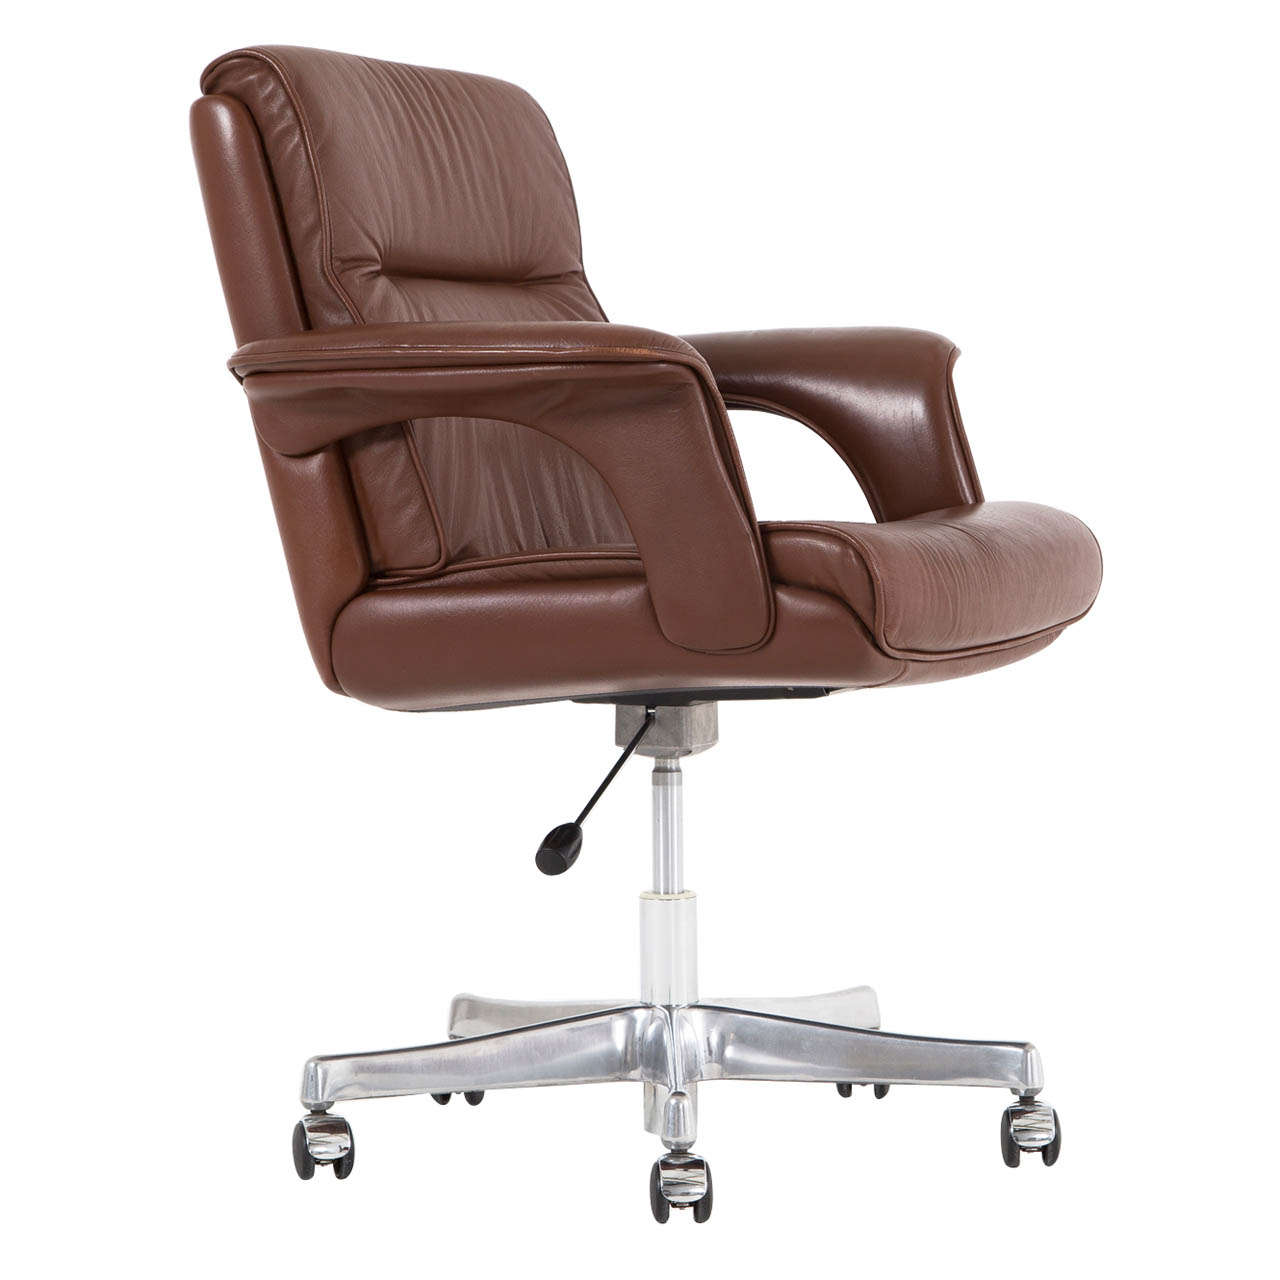 Brown Leather Office Chairs Executive Conference Desk Office Chair In Brown